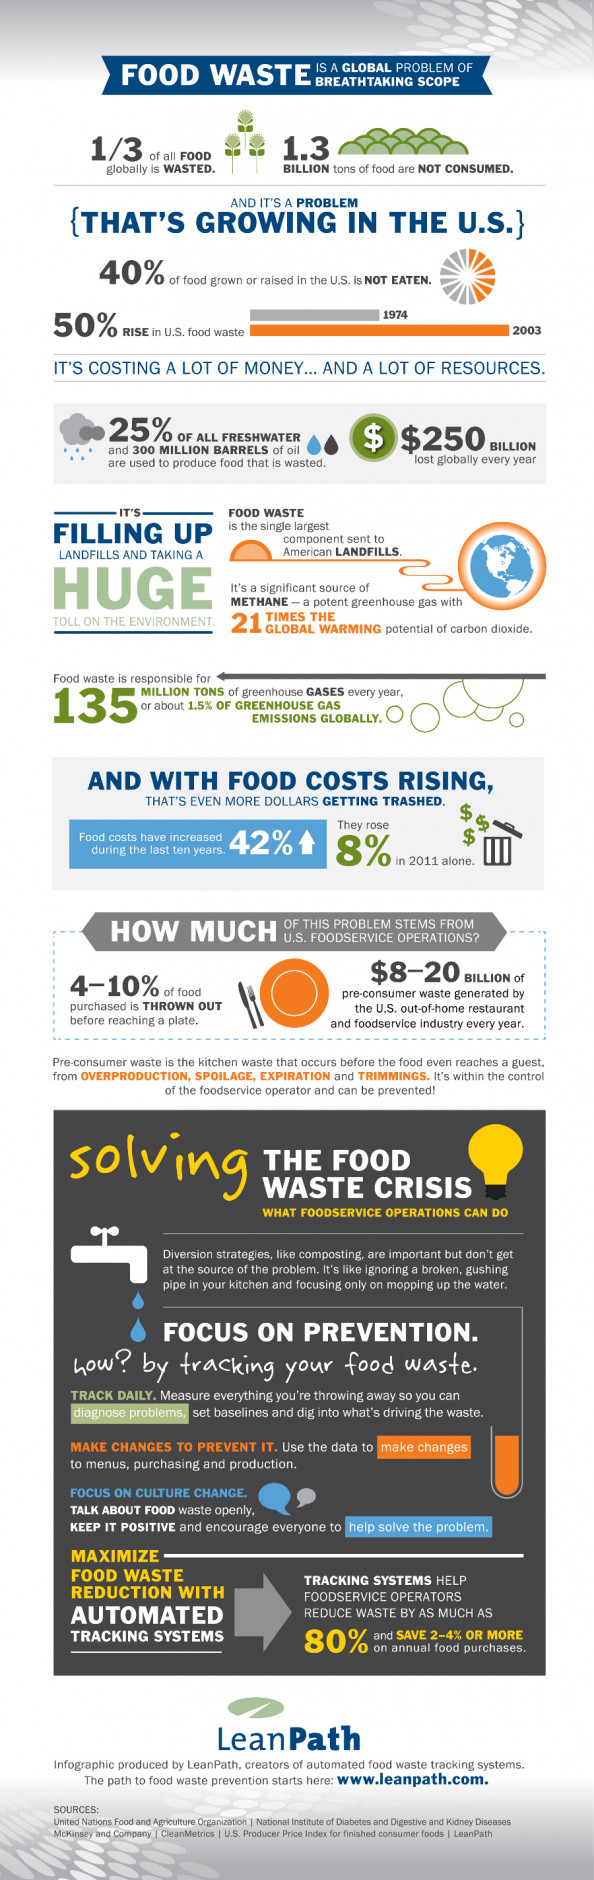 Food Waste Crisis: What Foodservice Operators Can Do Infographic